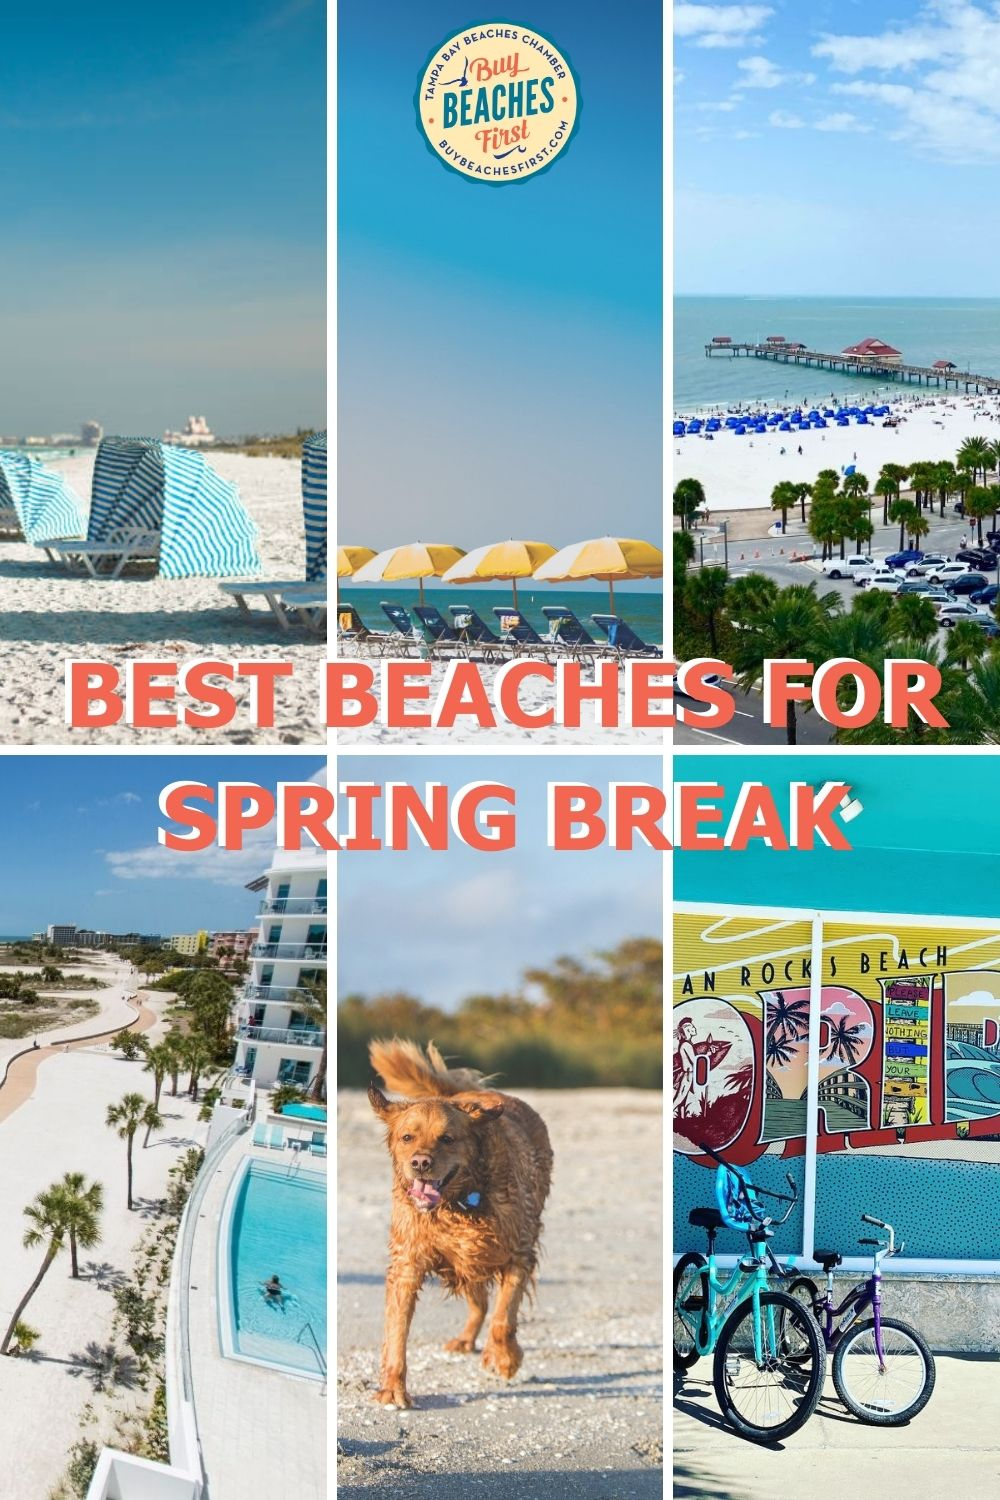 Image for 6 Best Beaches for Spring Break in Tampa Bay, Florida